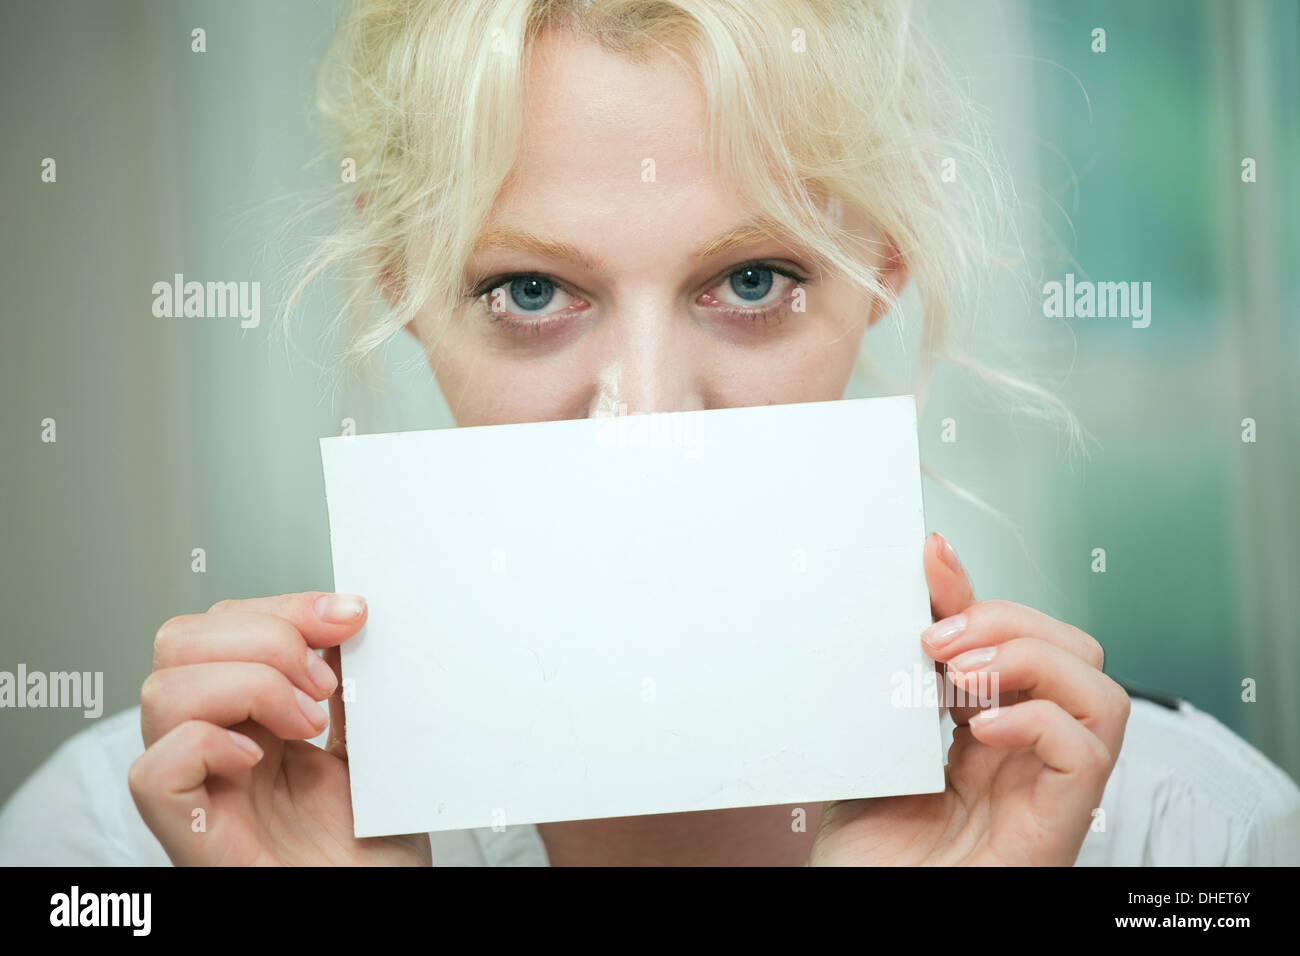 Young woman holding a blank card over her face - Stock Image